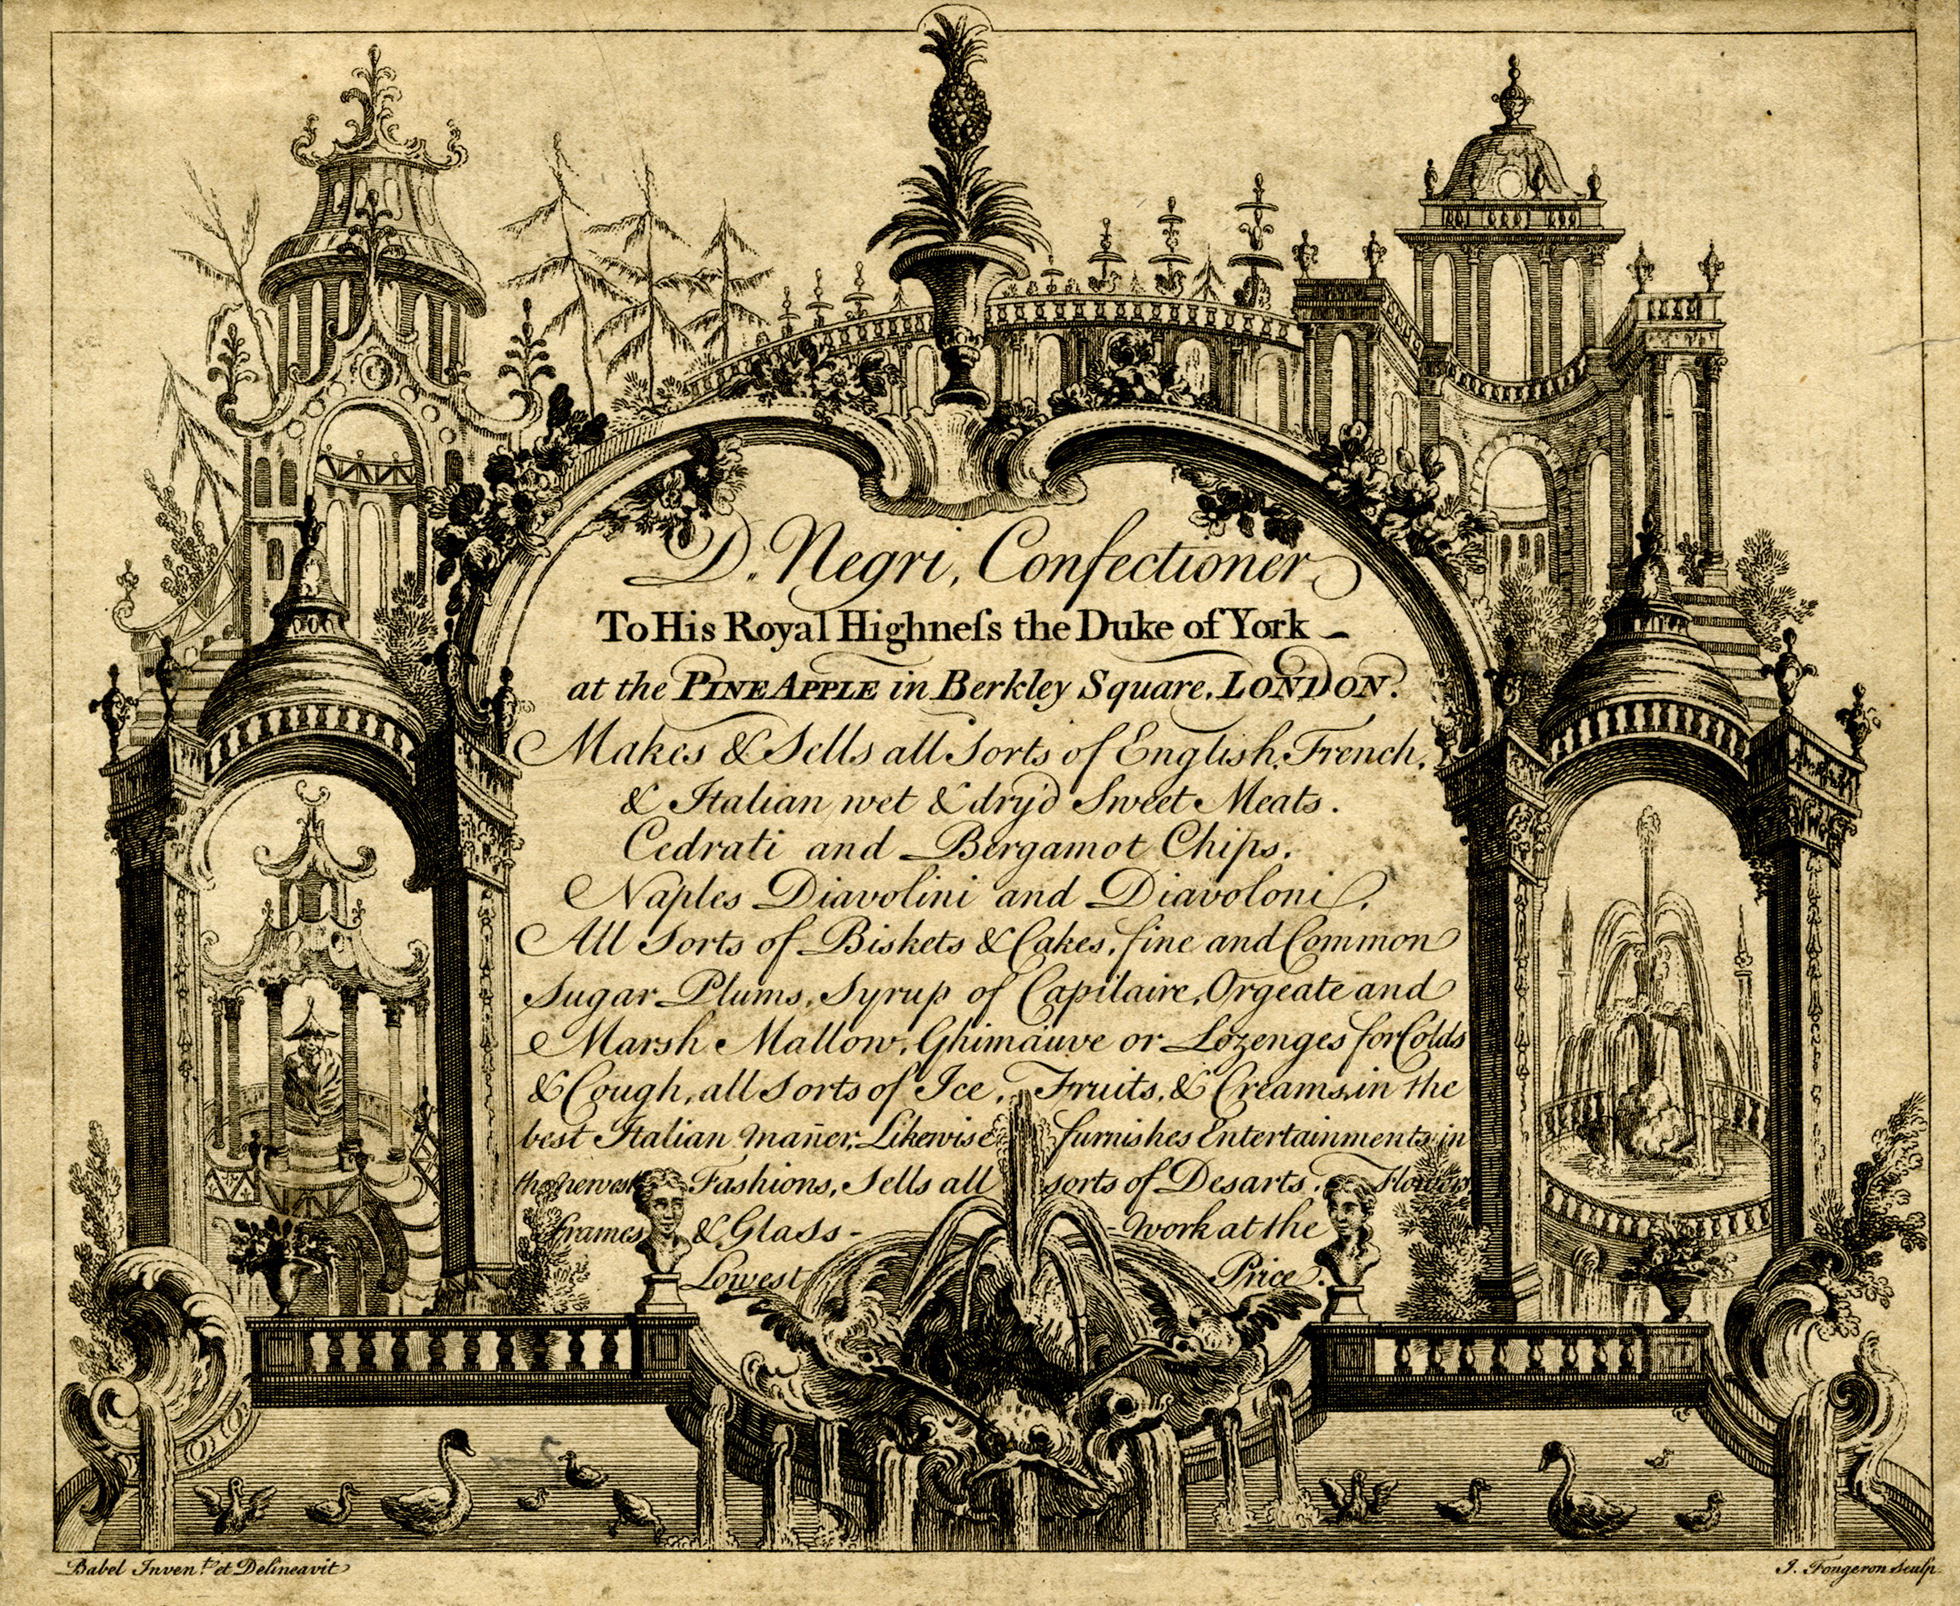 A black-and-white print of a trade card for Negri confectioners.